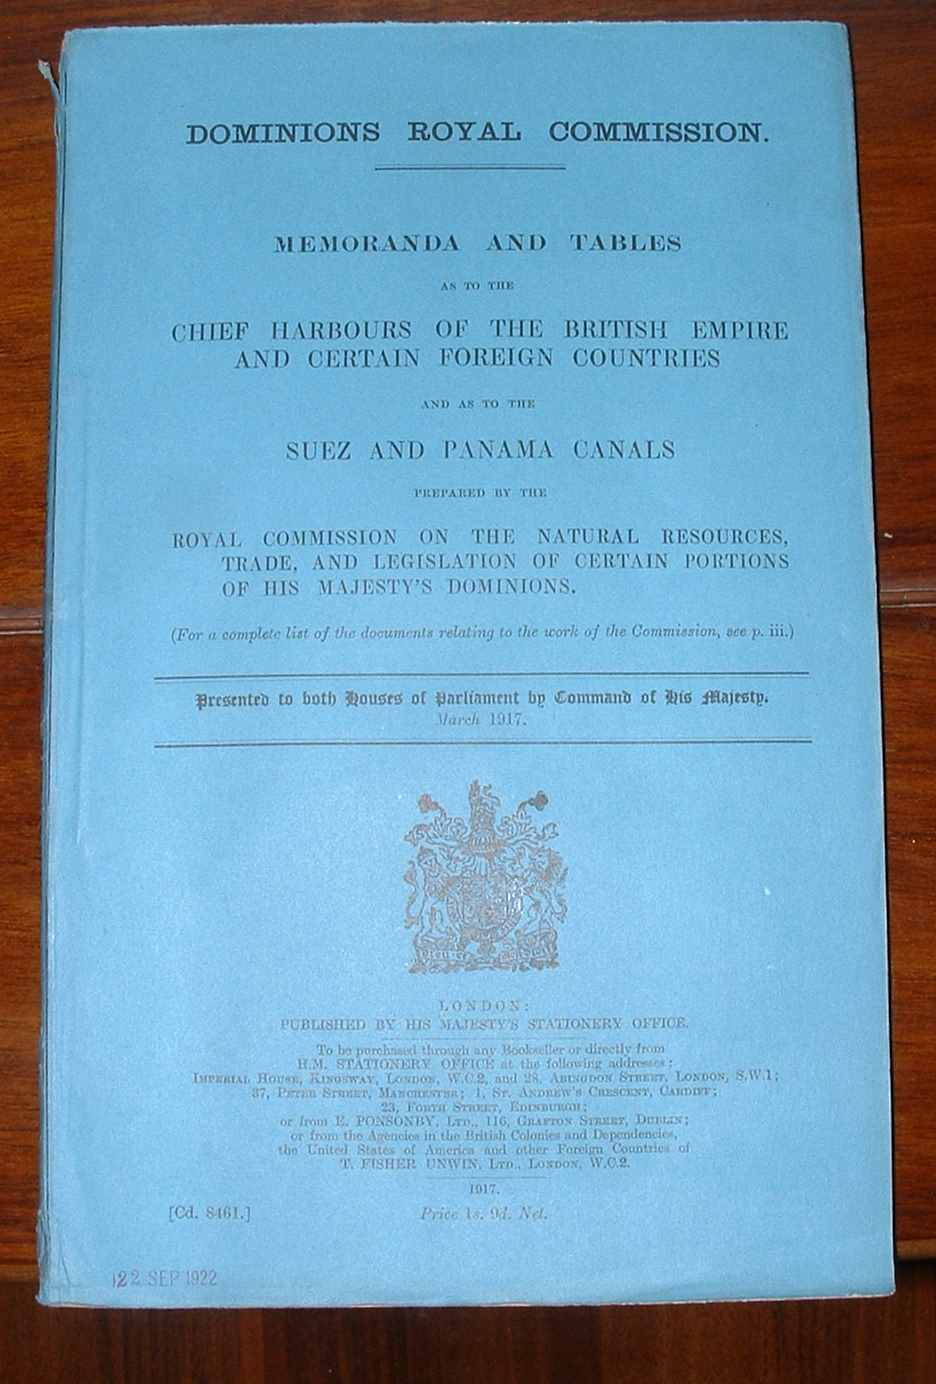 Image for Dominions Royal Commission. Memoranda and Tables as to the Chief Harbours of the British Empire and Certain Foreign Countries and as to the Suez and Panama Canals